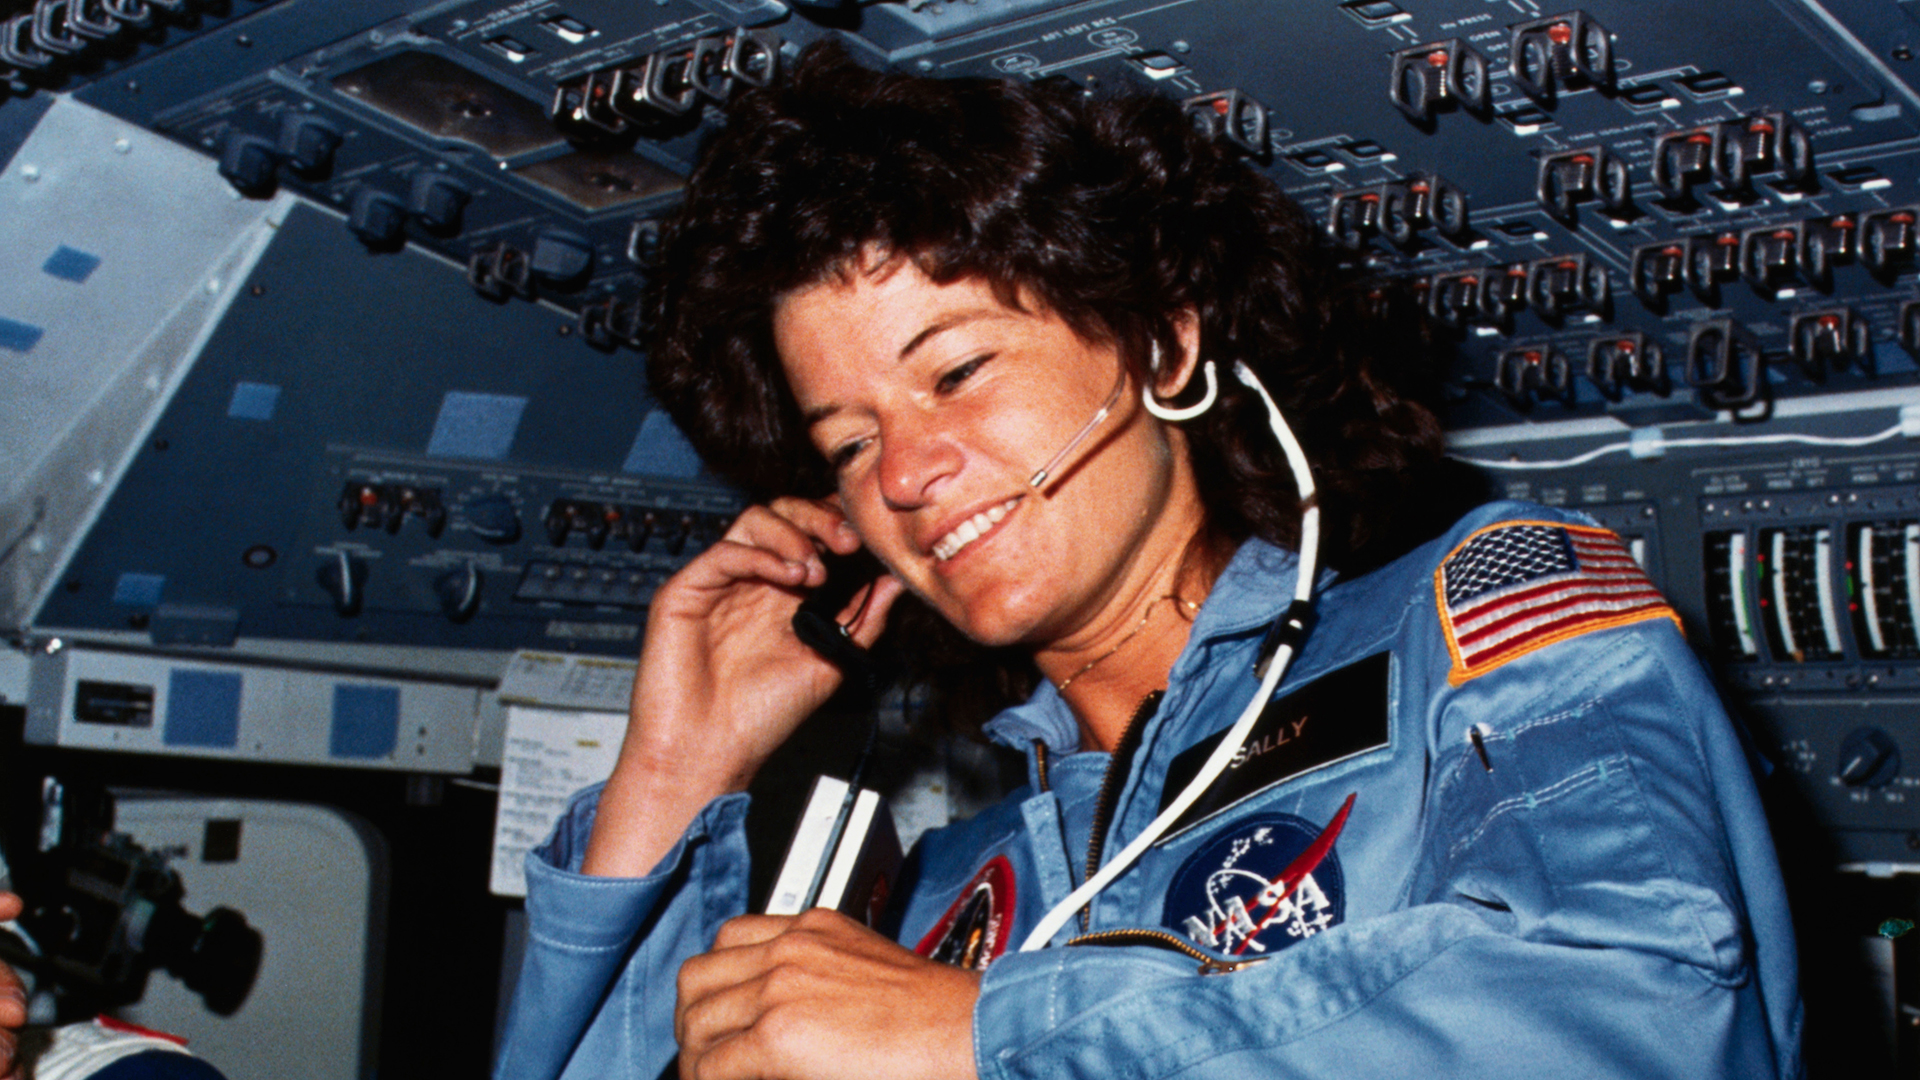 June 18, 1983: Sally Ride Became the First American Woman in Space